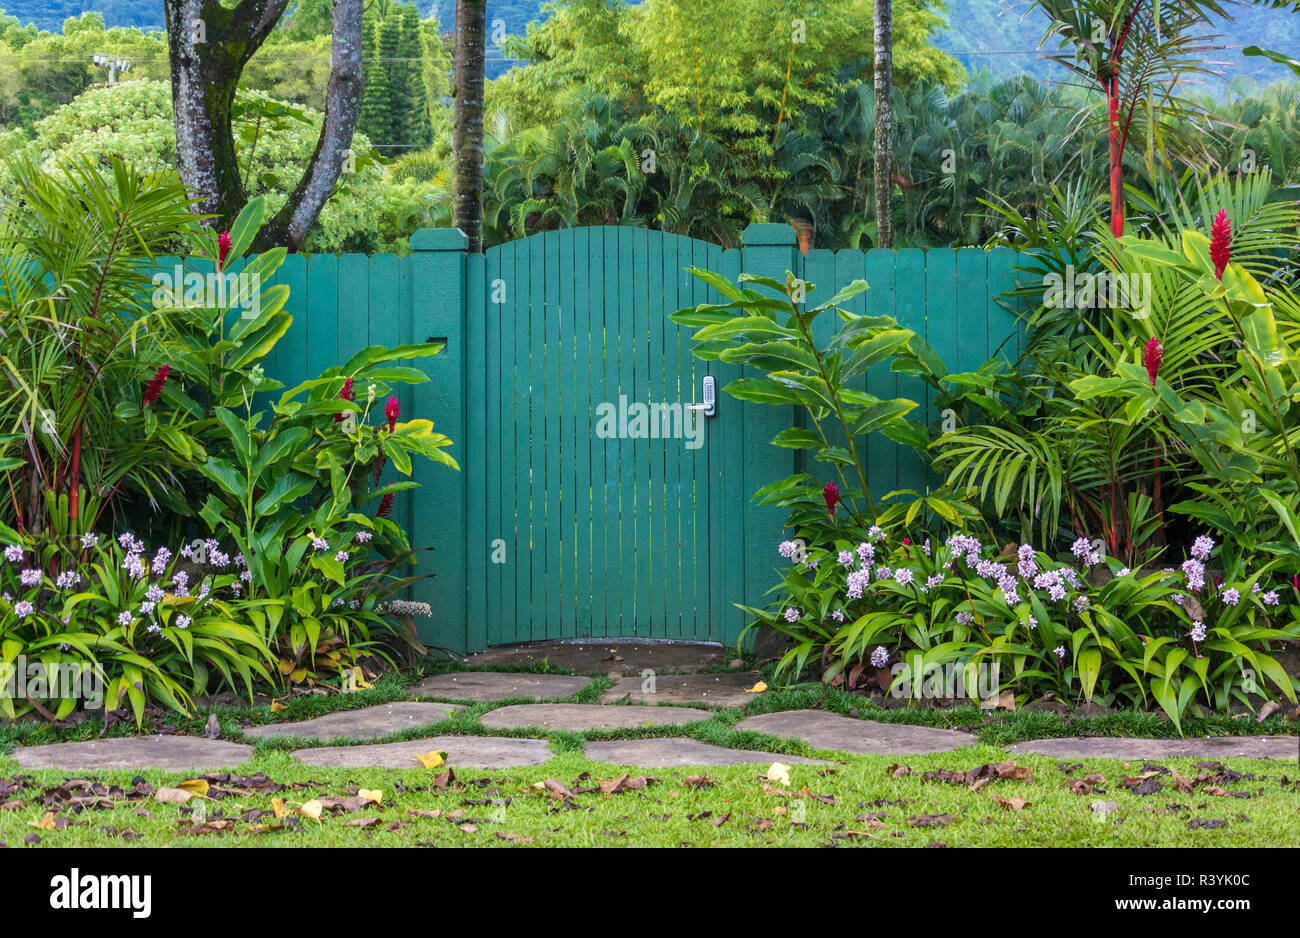 Hanalei, Hawaii, Kauai, flowers, green gate Stock Photo